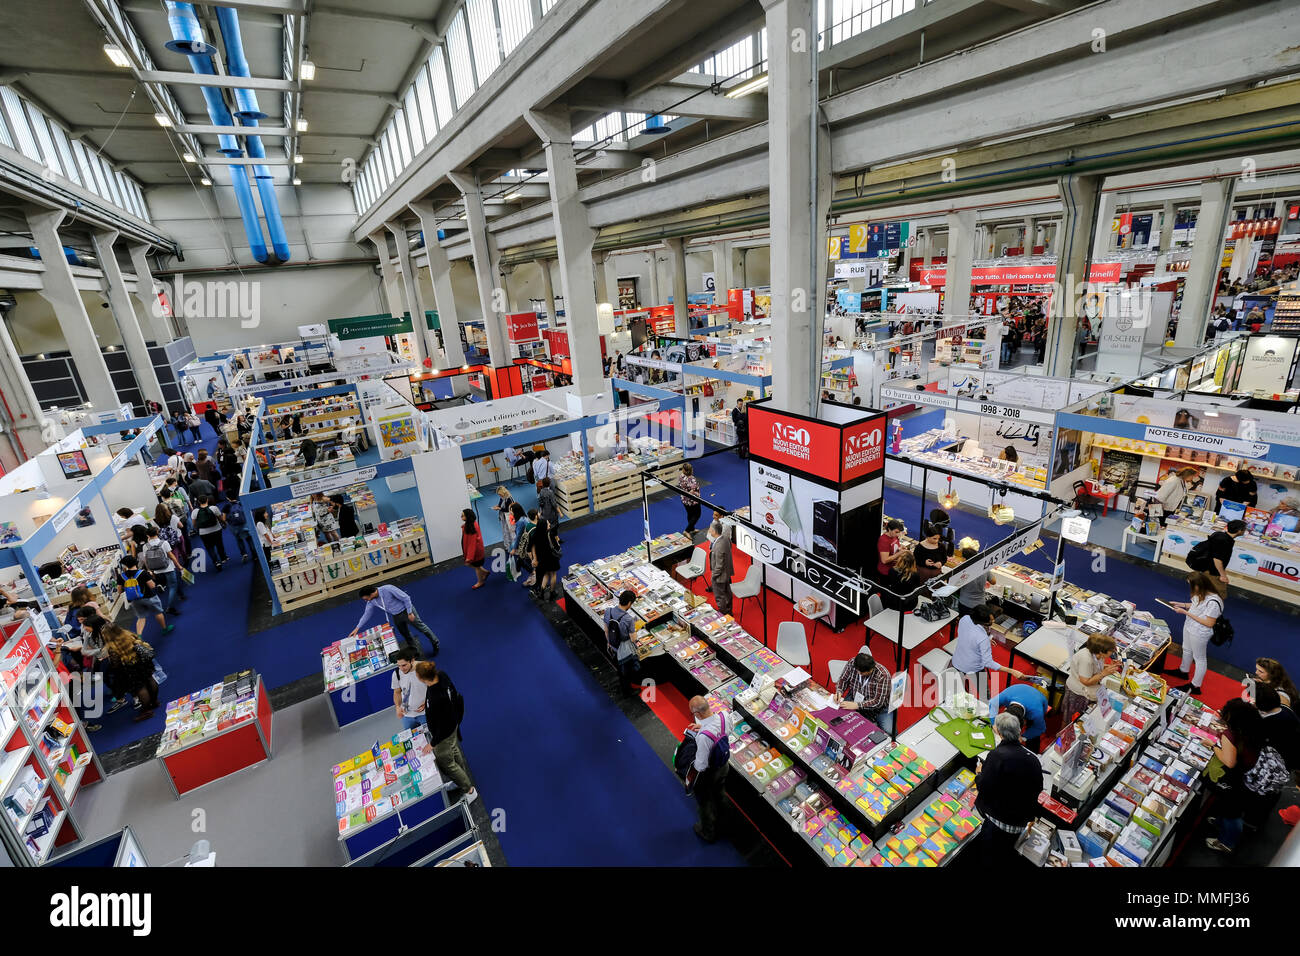 Turin, Piedmont, Italy, 10th May, 2018. International Book fair 2018,first day.General view of the stands in the book fair Credit: RENATO VALTERZA/Alamy Live News - Stock Image